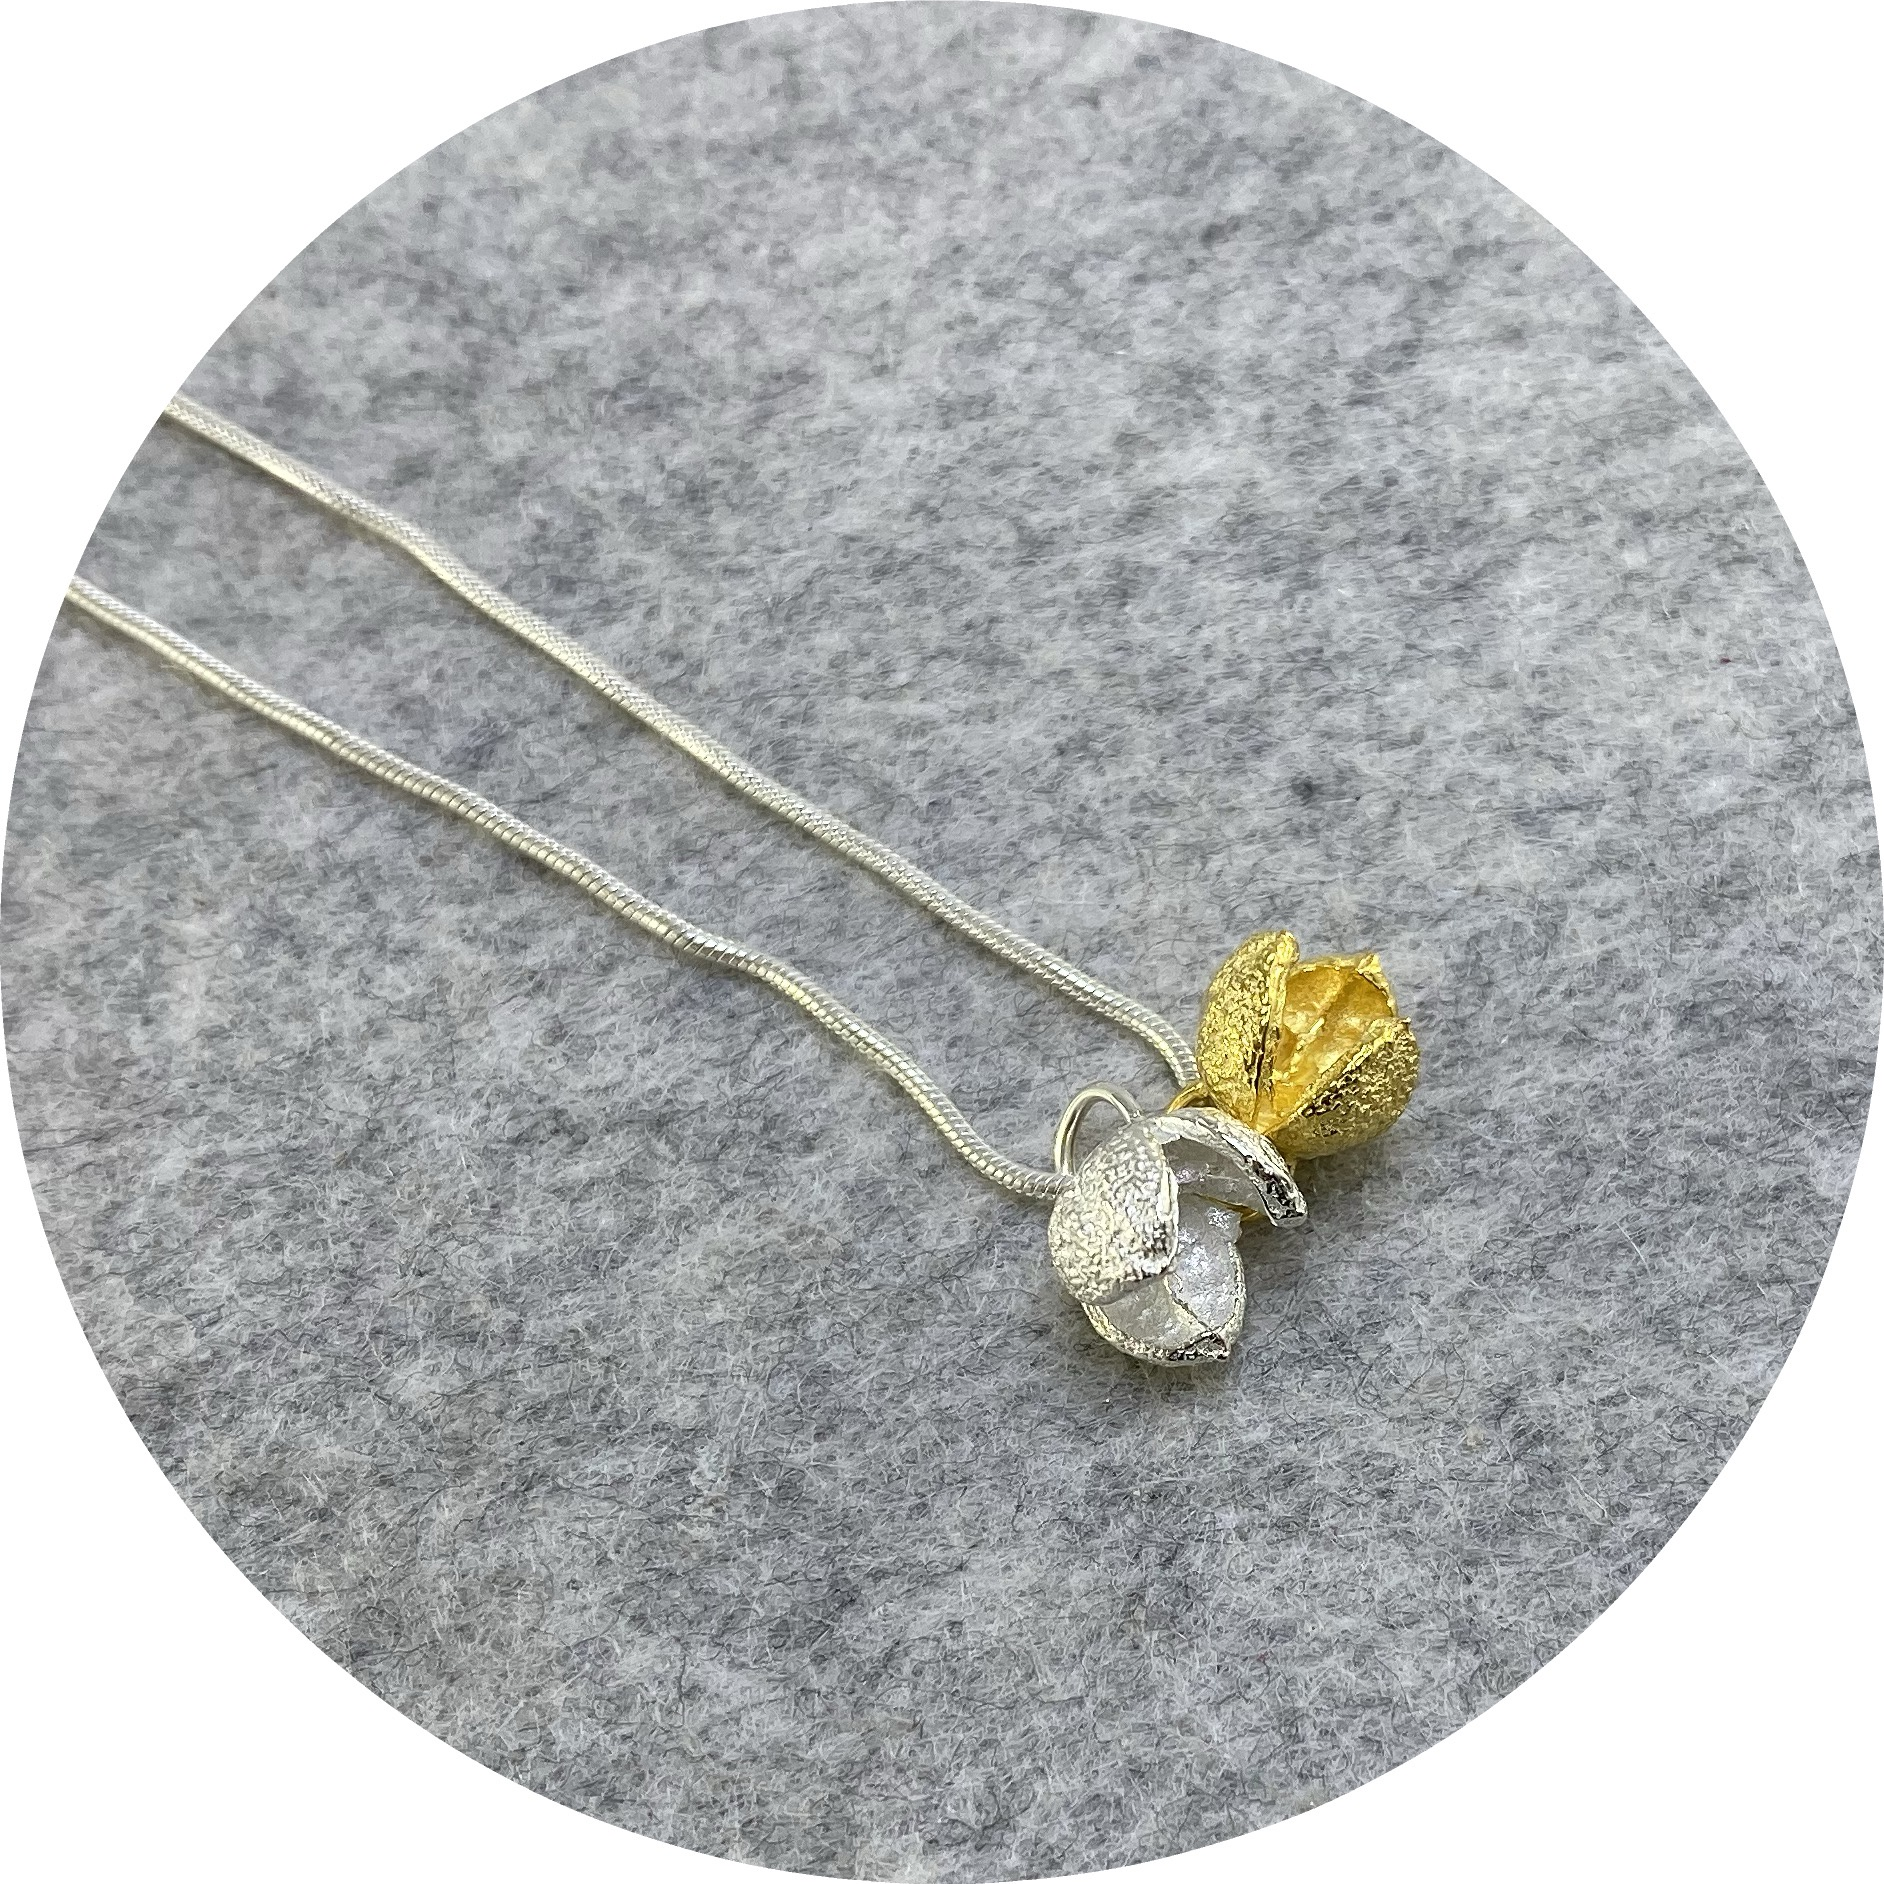 Manuela Igreja- Pittosporum charm necklace. Sterling silver and yellow gold plated.